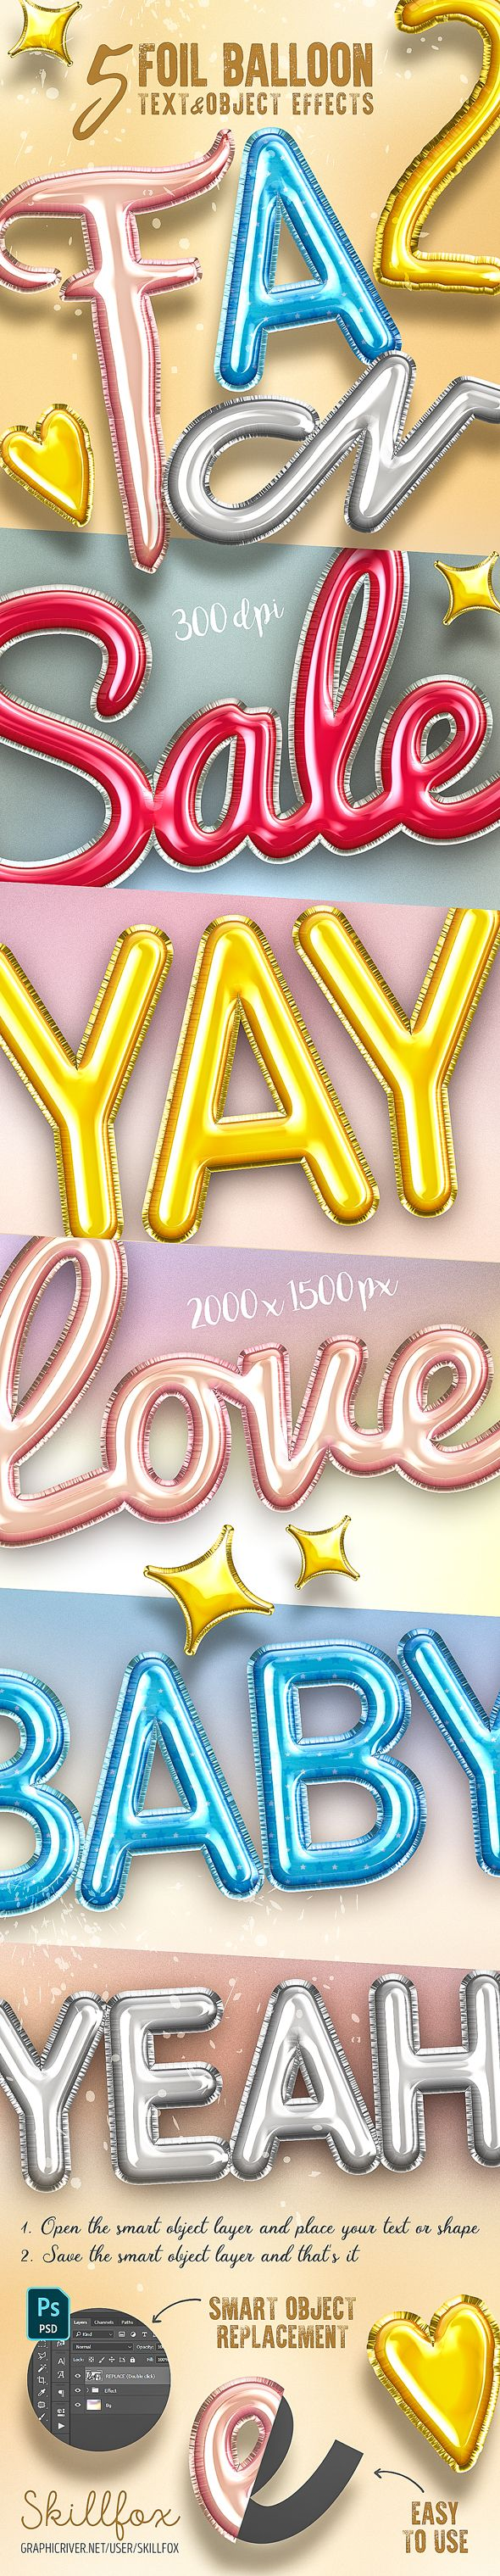 5 3D Foil Balloon Text Effects for Photoshop — Layered PSD #3d #helium balloon • Download ➝ https://graphicriver.net/item/5-3d-foil-balloon-text-effects-for-photoshop/21526036?ref=pxcr